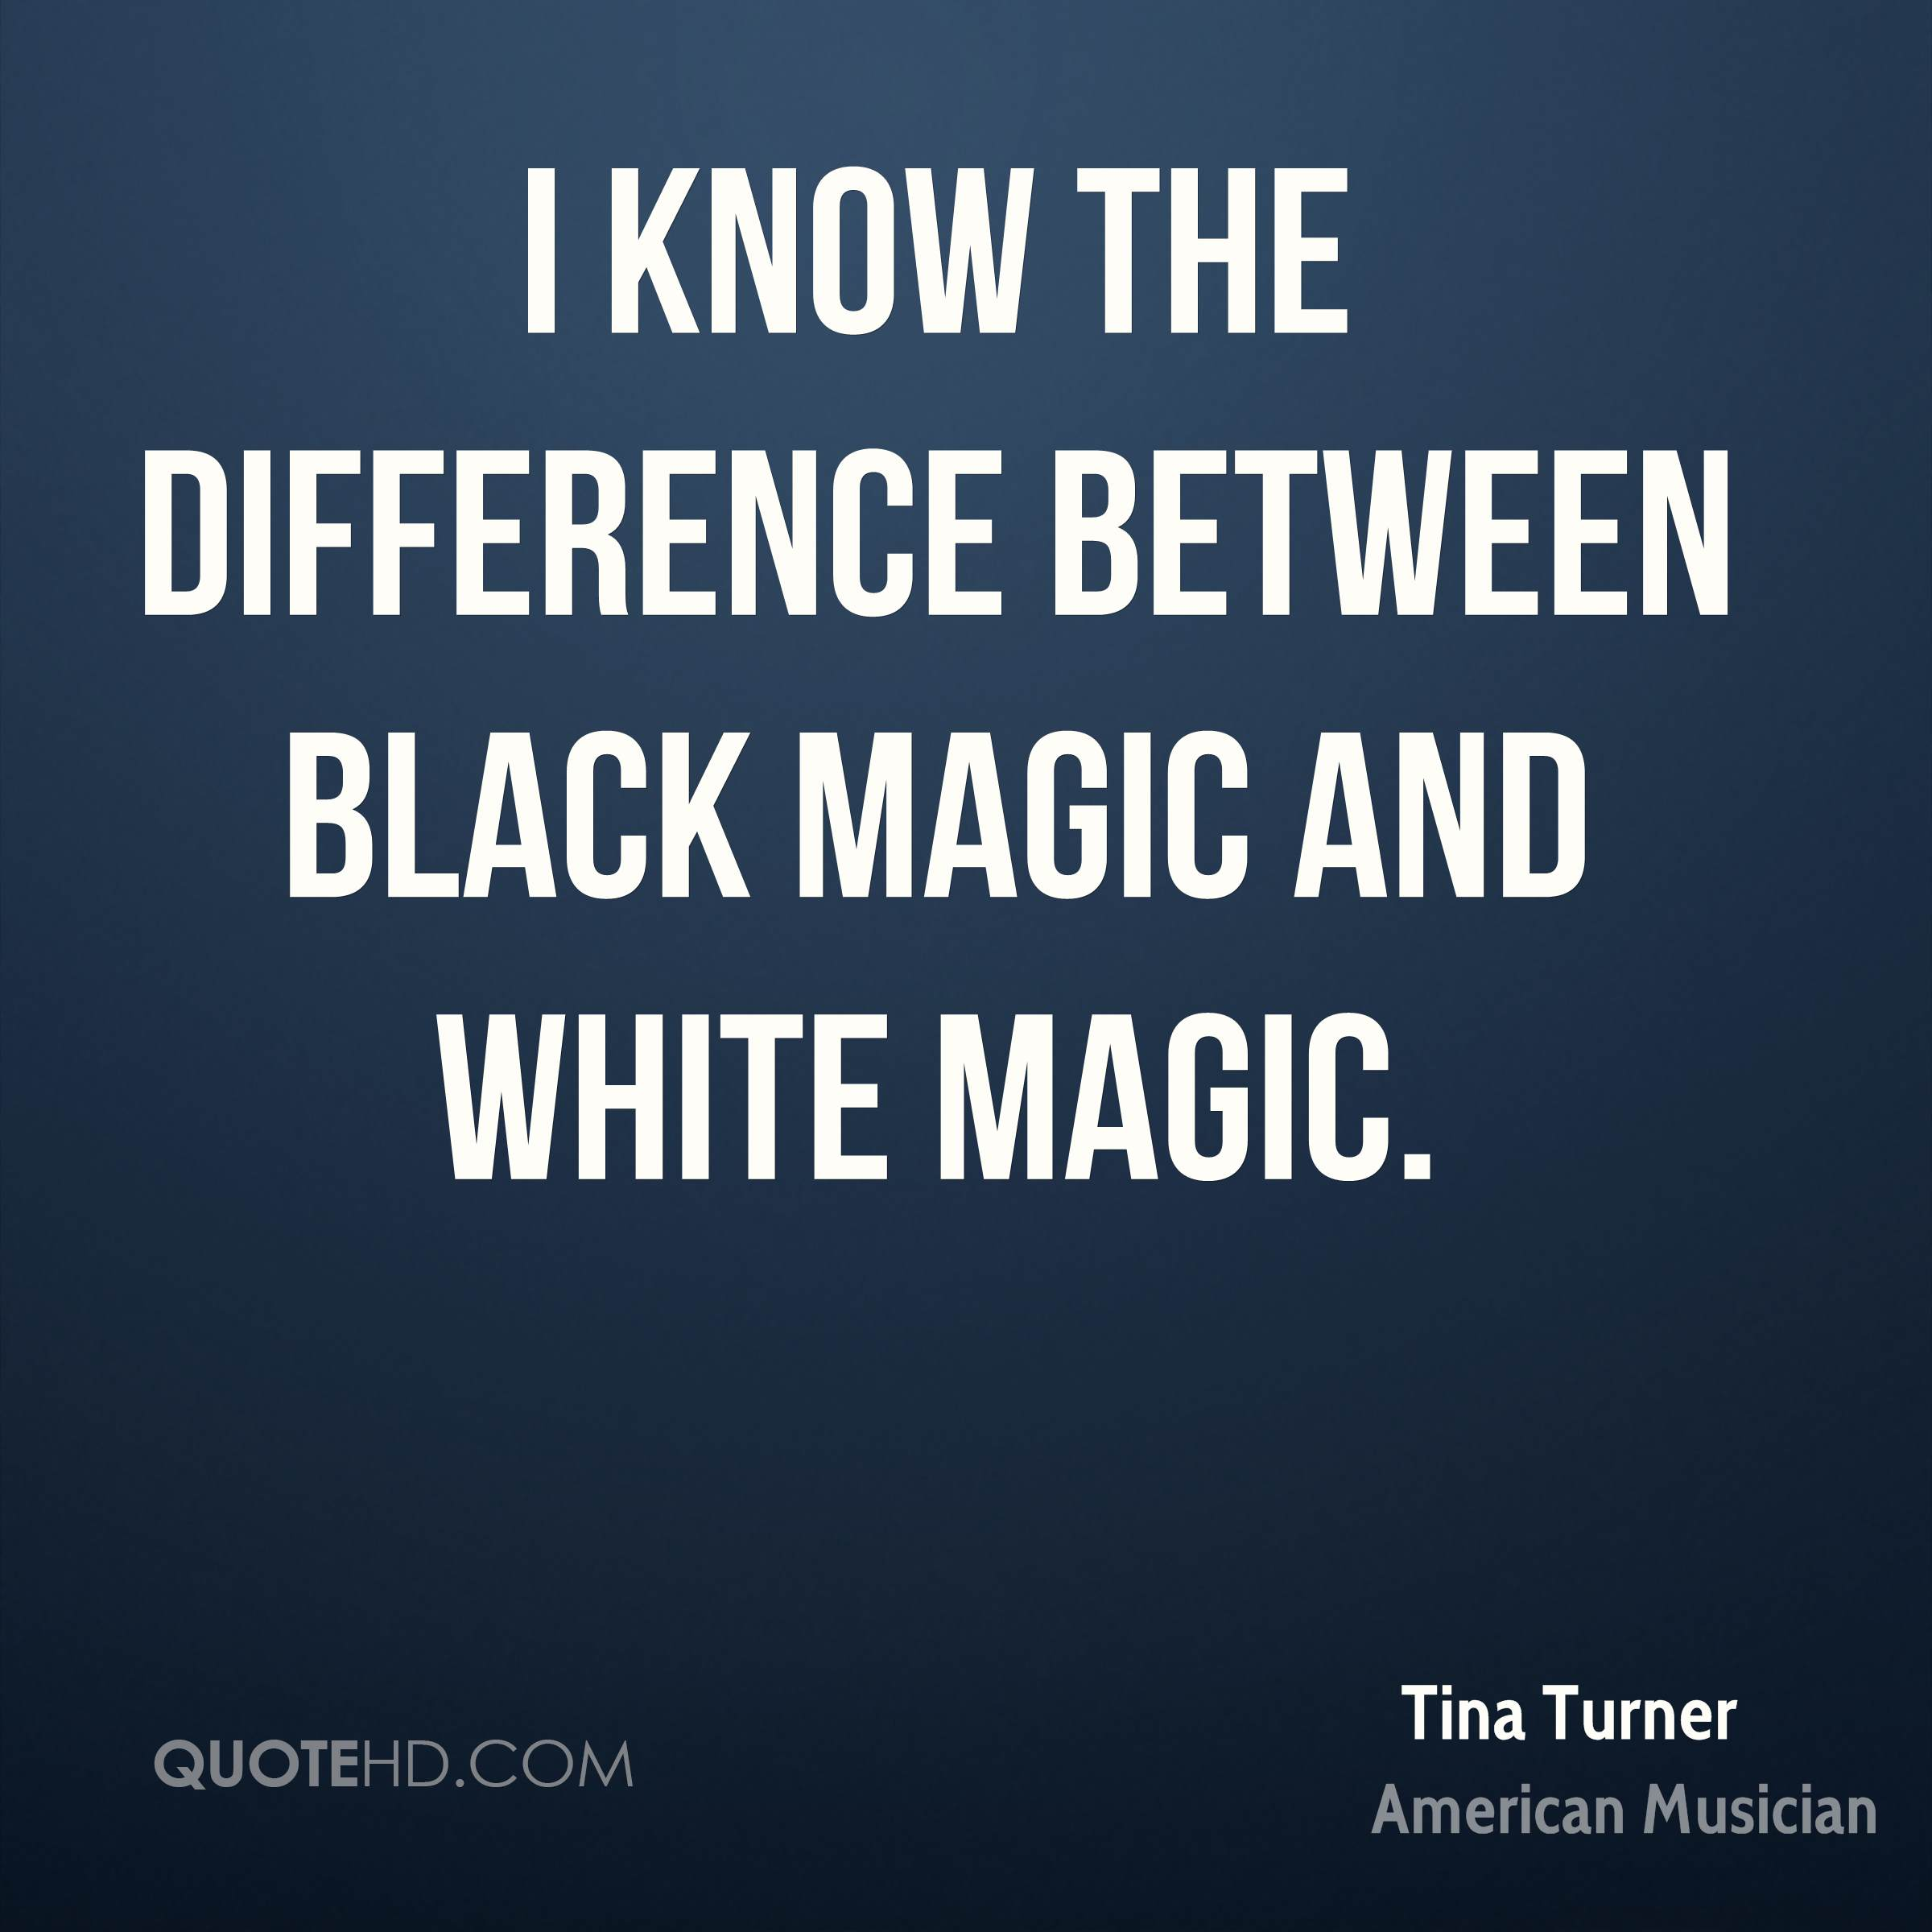 I know the difference between black magic and white magic.